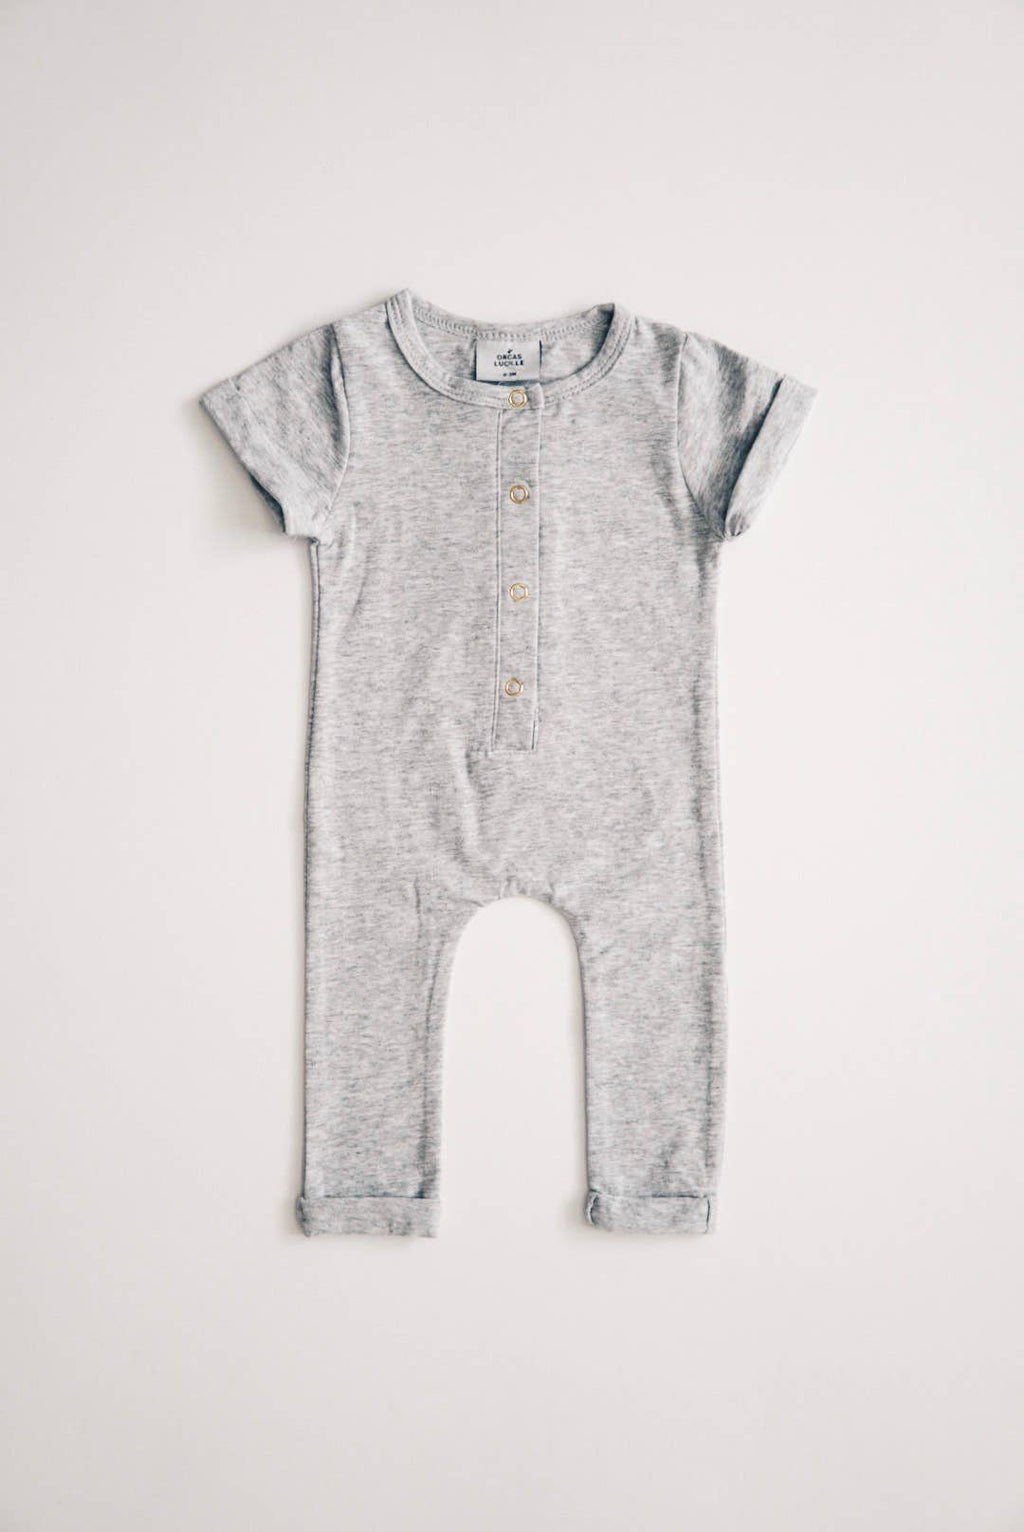 Orcas Lucille - Short Sleeve Henley Romper - Heather Grey - Le Bébé Chic Boutique